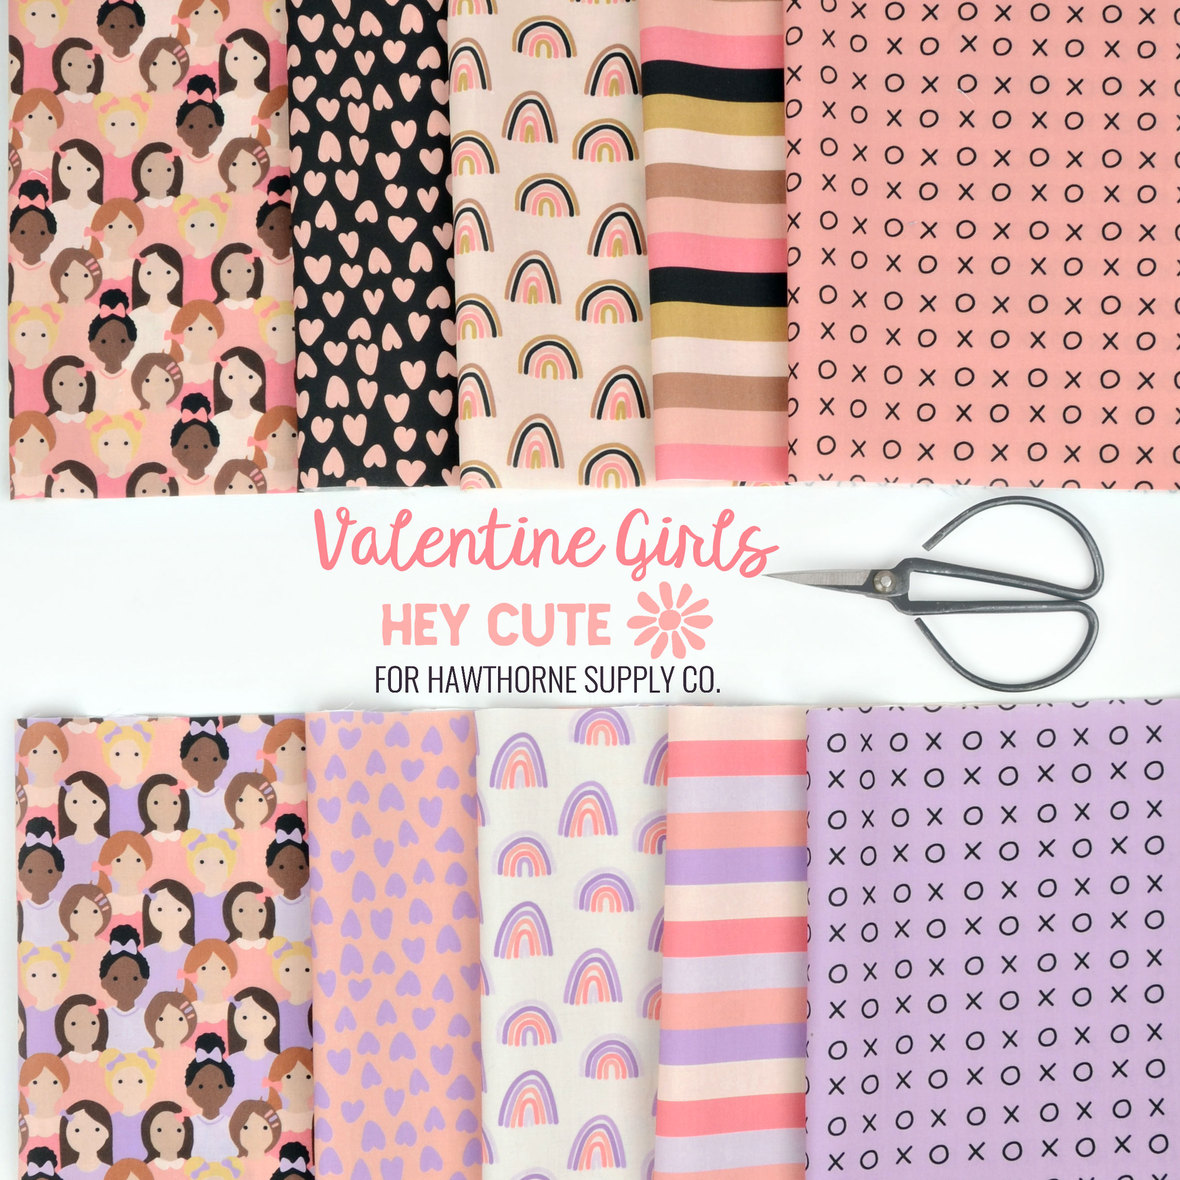 Valentine-Girls-Hey-Cute-for-Hawthorne-Supply-Co